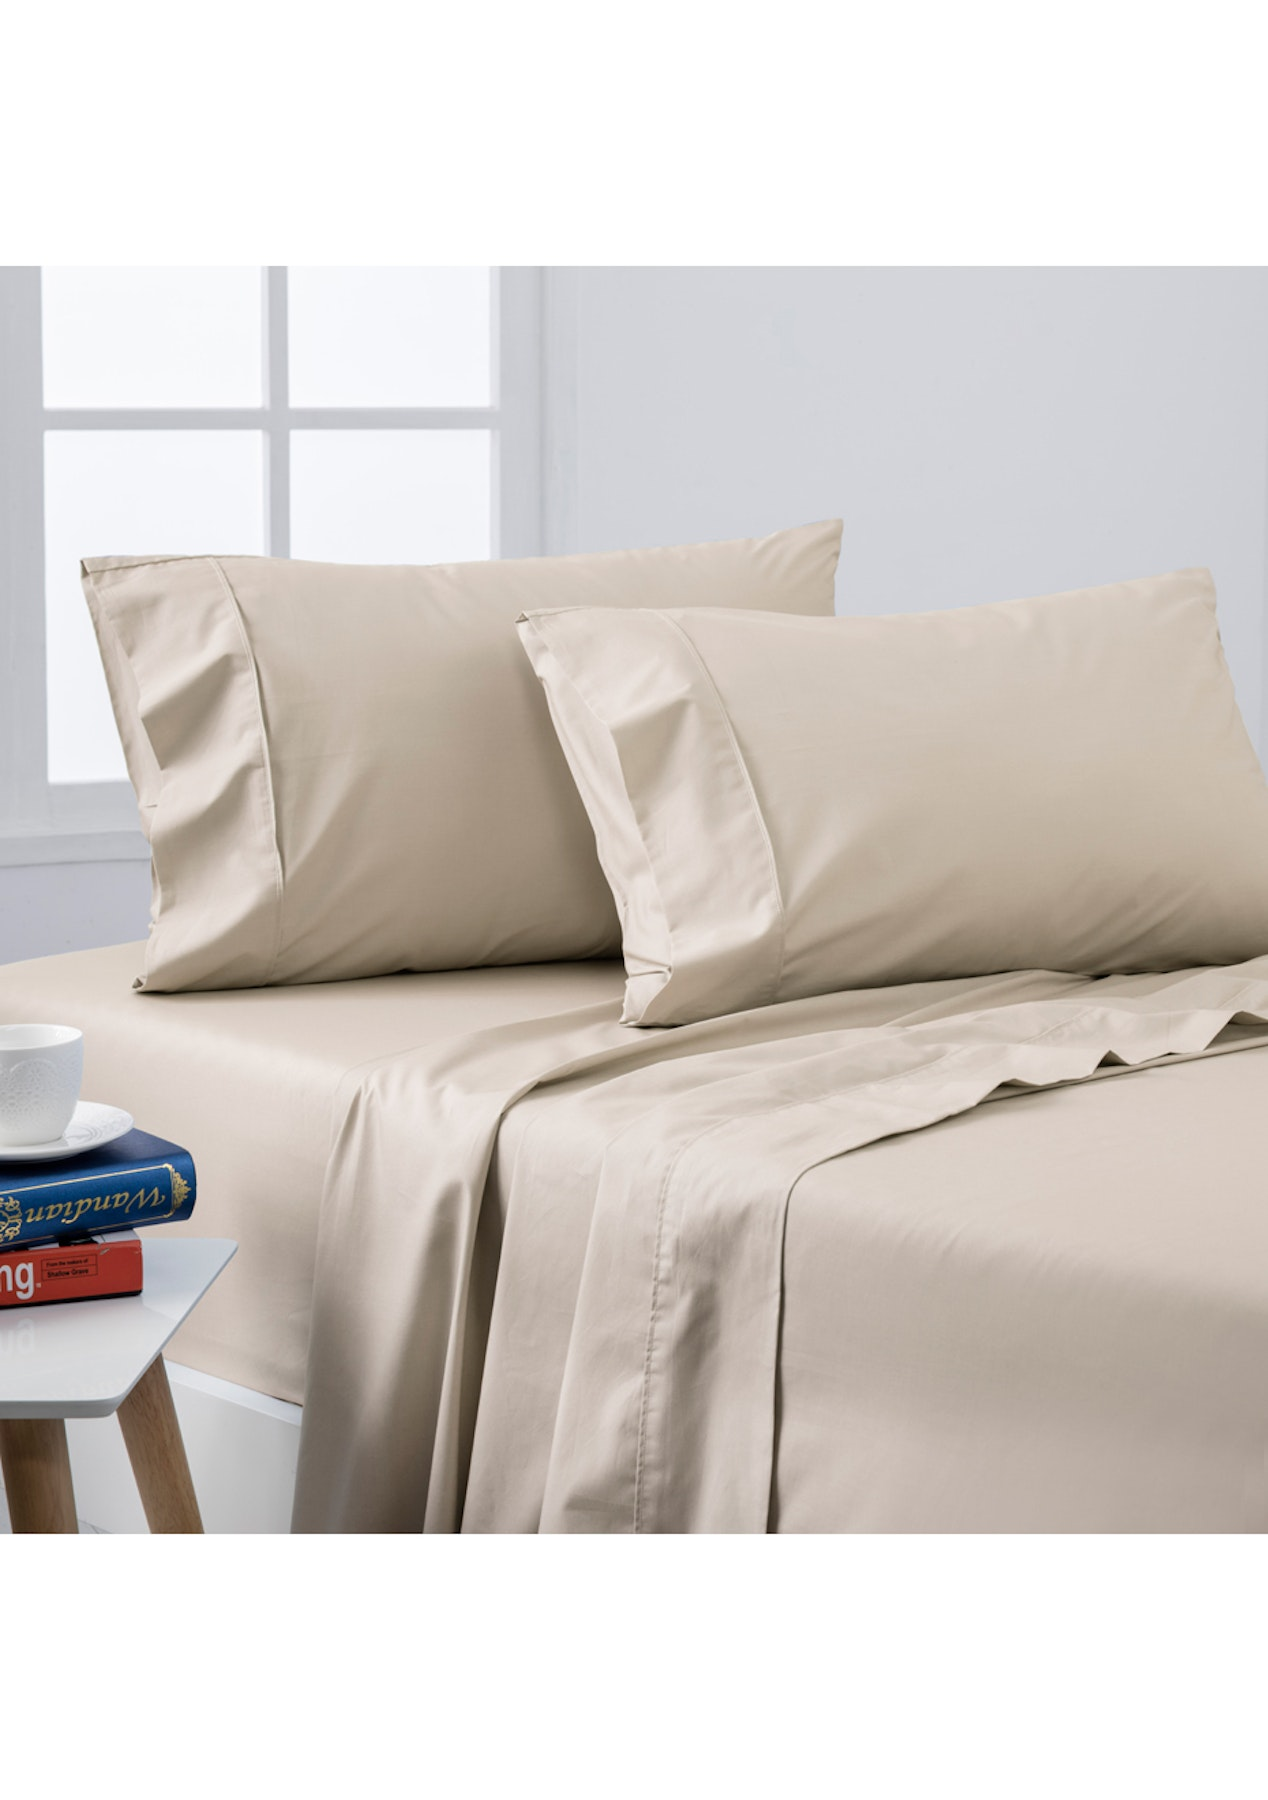 Dreamaker Coolmax Sheet Set Kb Latte Under 60 Egyptian Cotton Duvet Covers Onceit